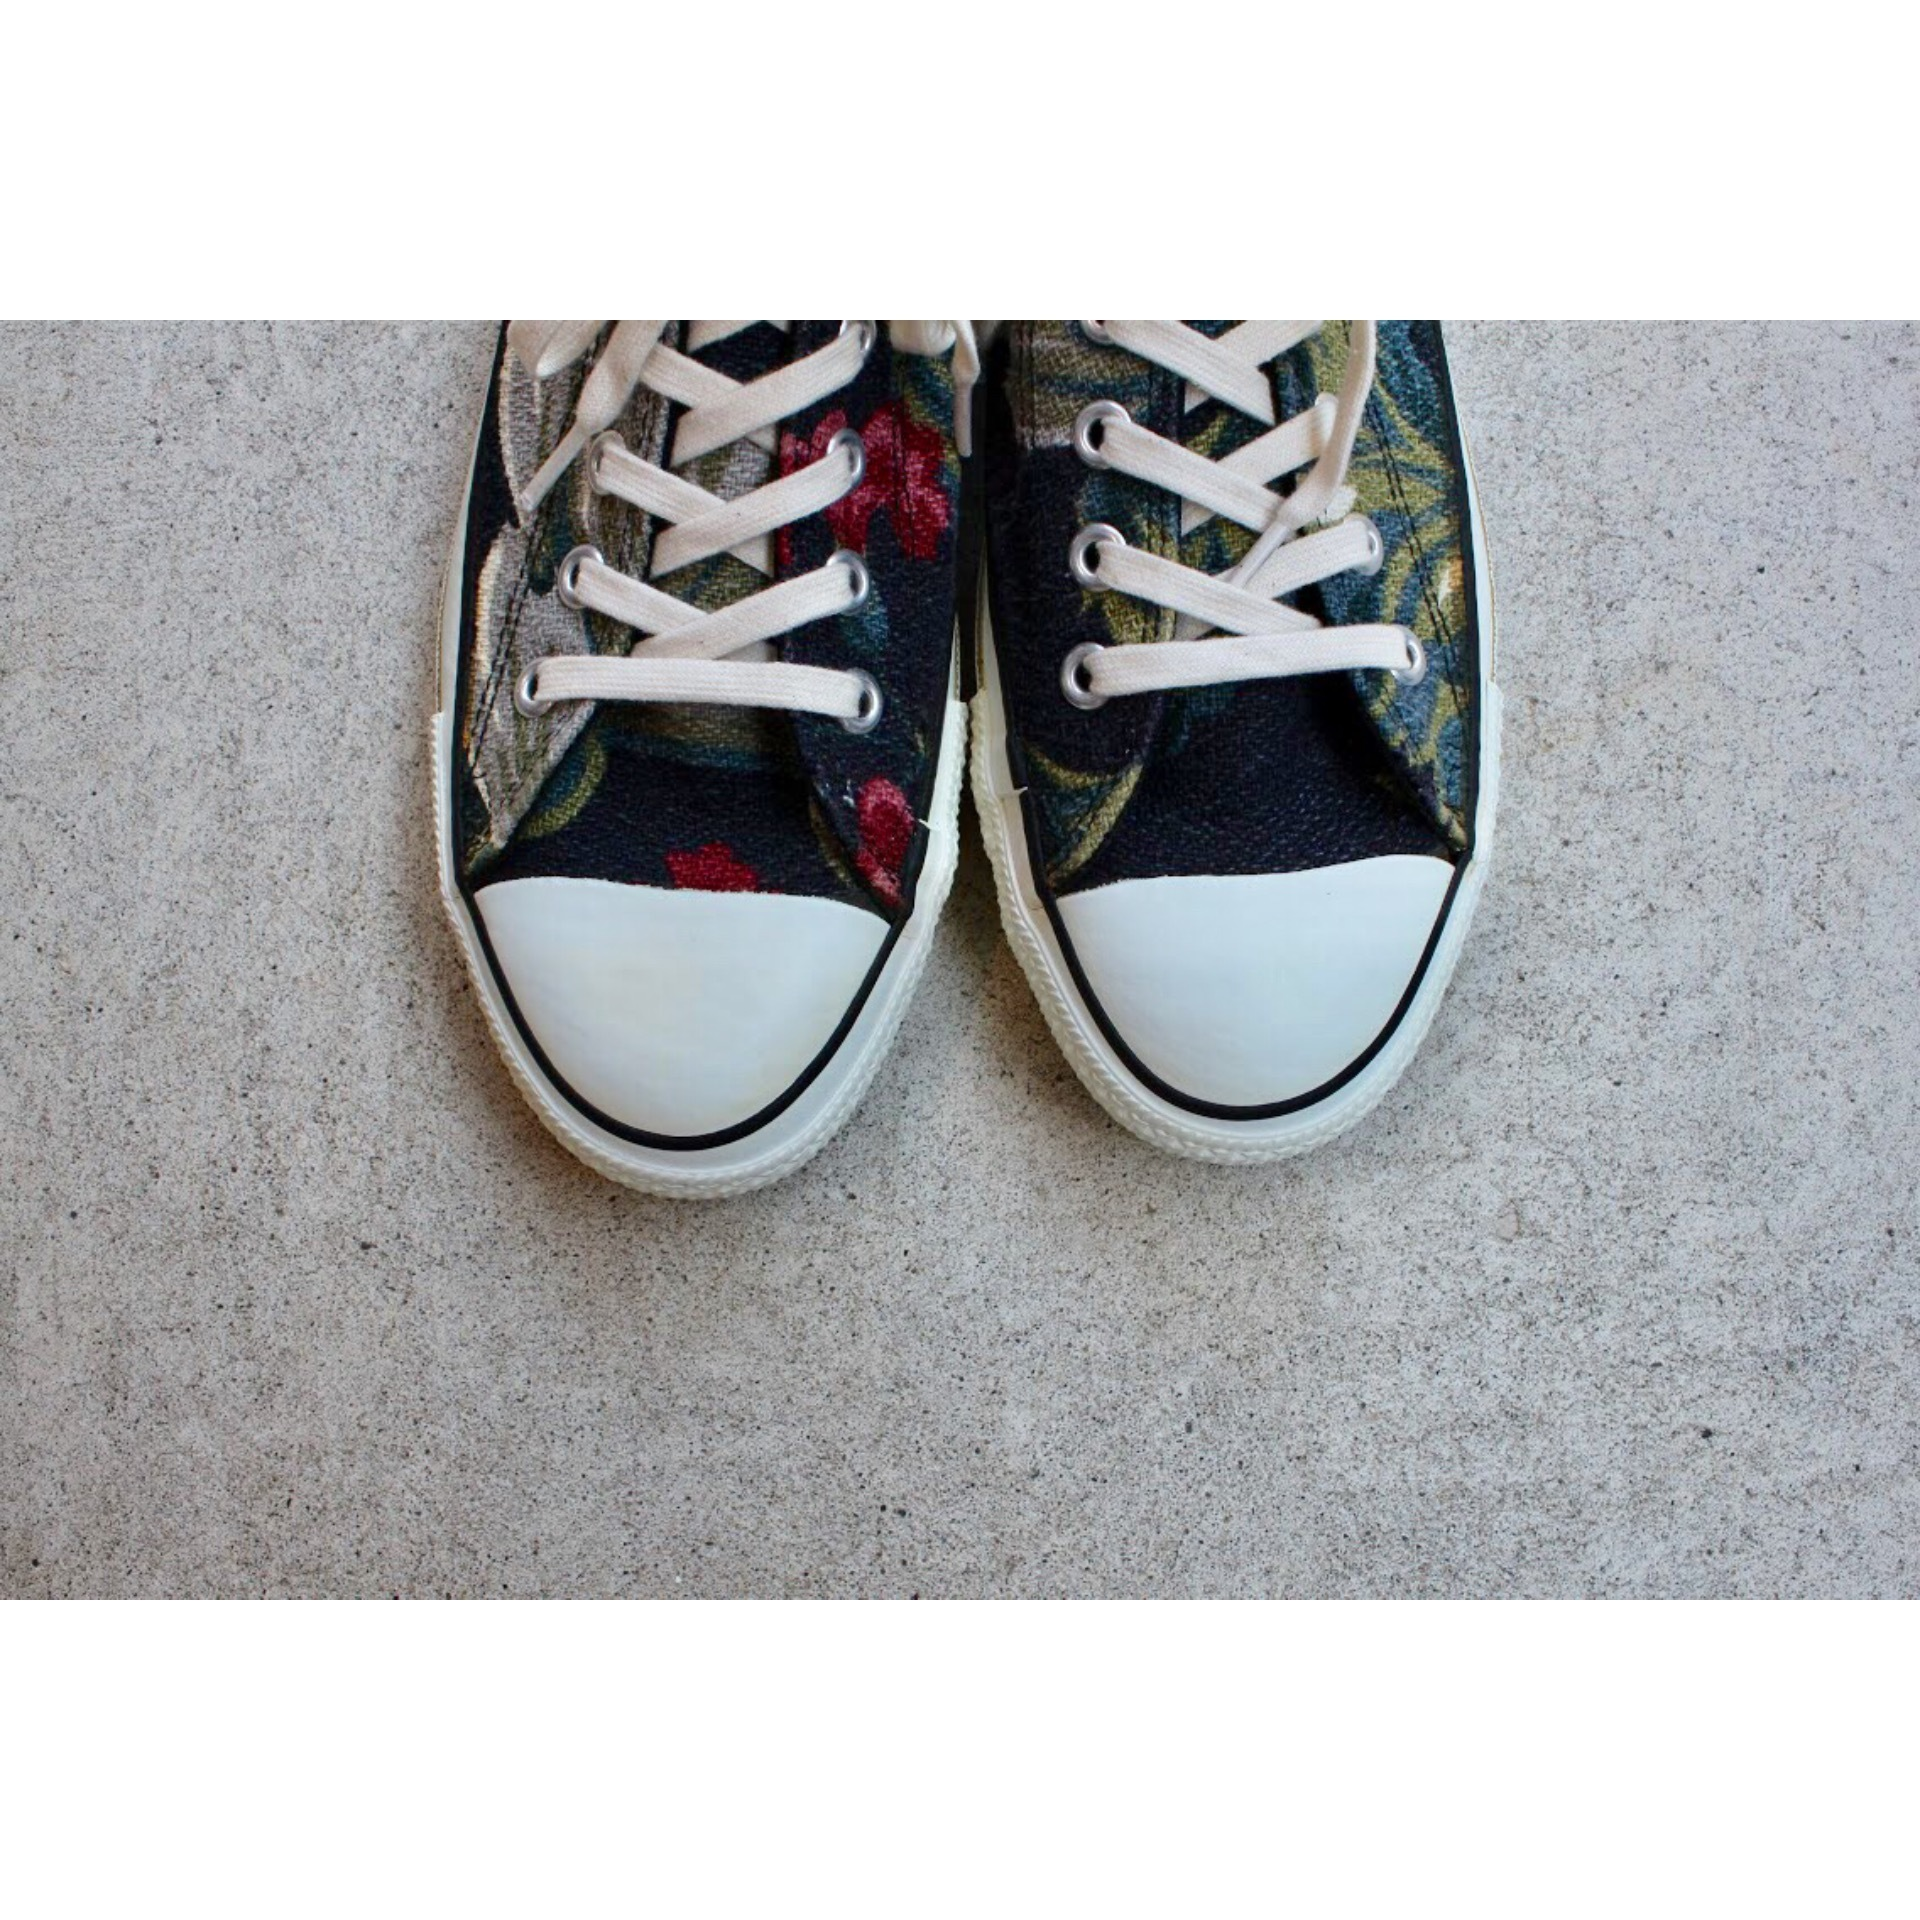 90s Converse Made in U.S.A. Size 7 1/2